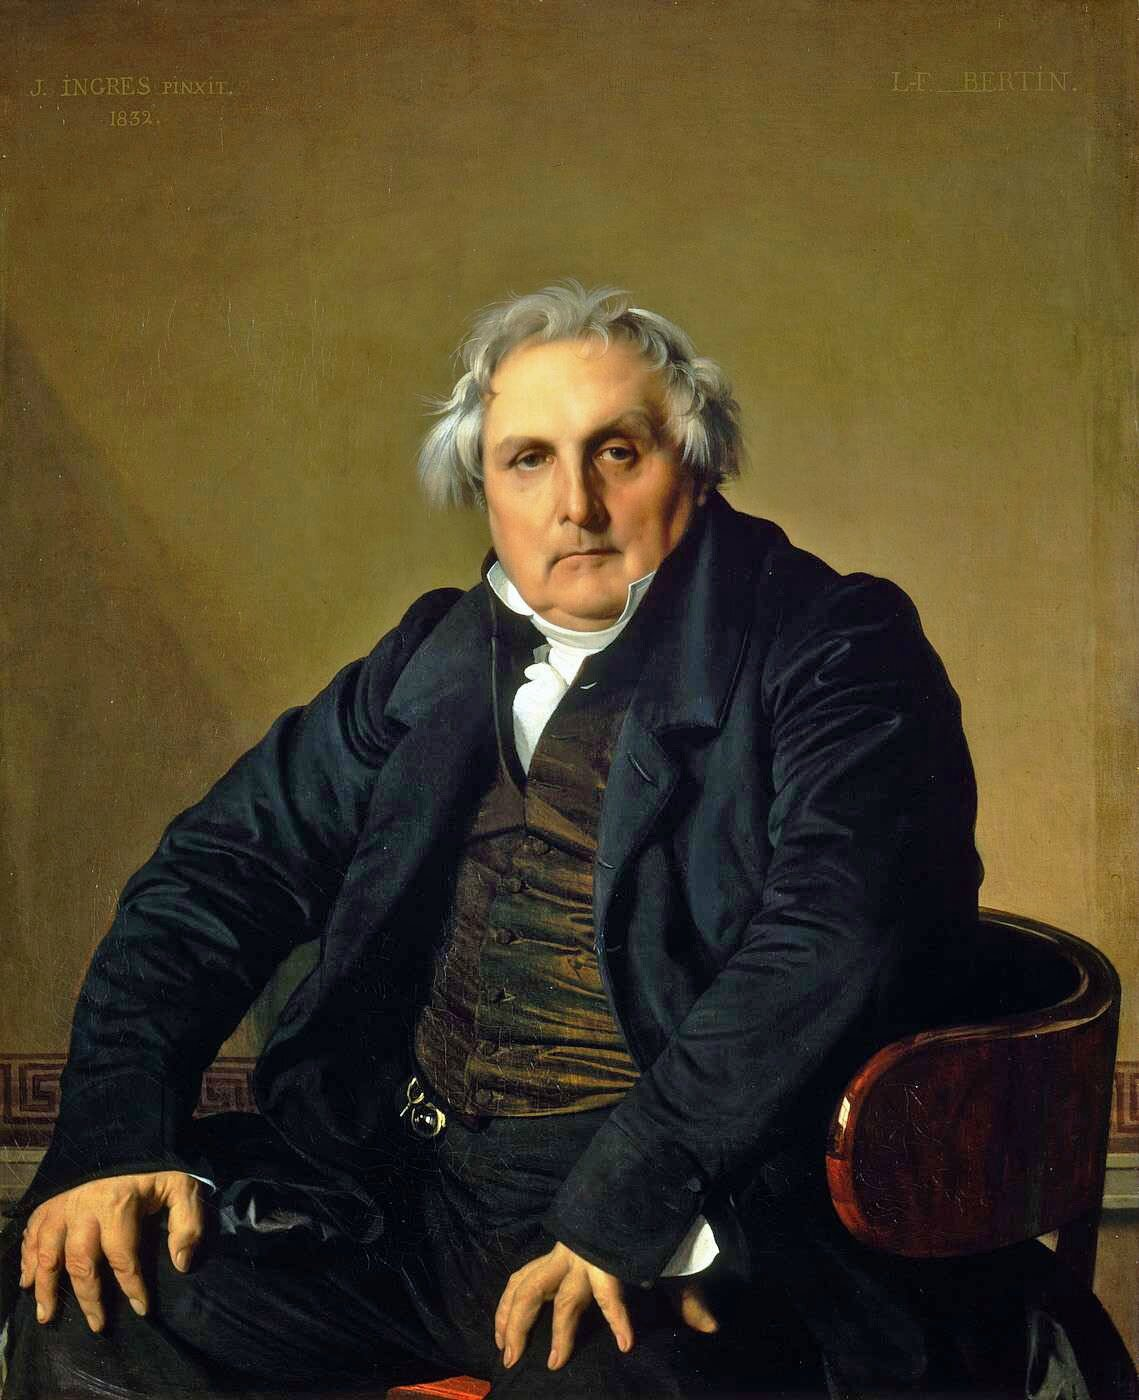 Jean-Auguste-Dominique Ingres - Portrait of French journalist Louis-François Bertin 1832